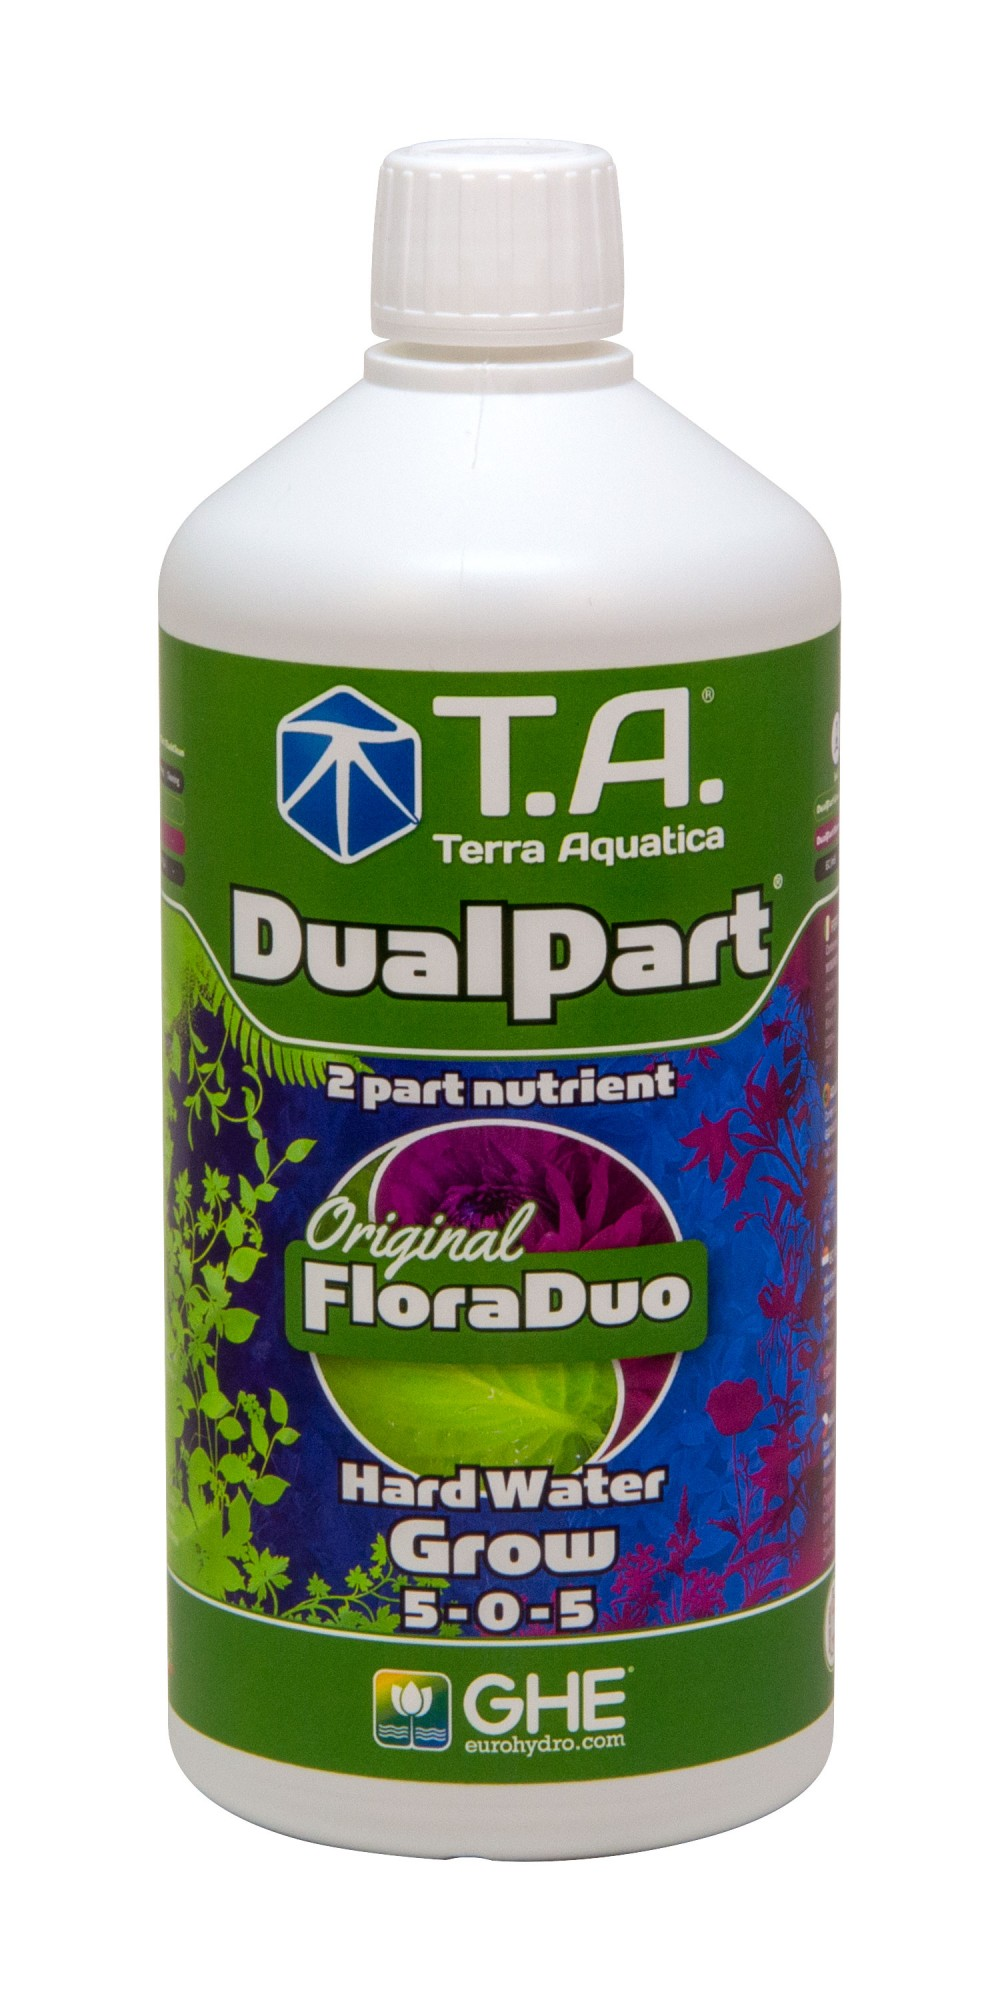 GHE FloraDuo Grow Hard Water 500ml (DualPart Grow HW)